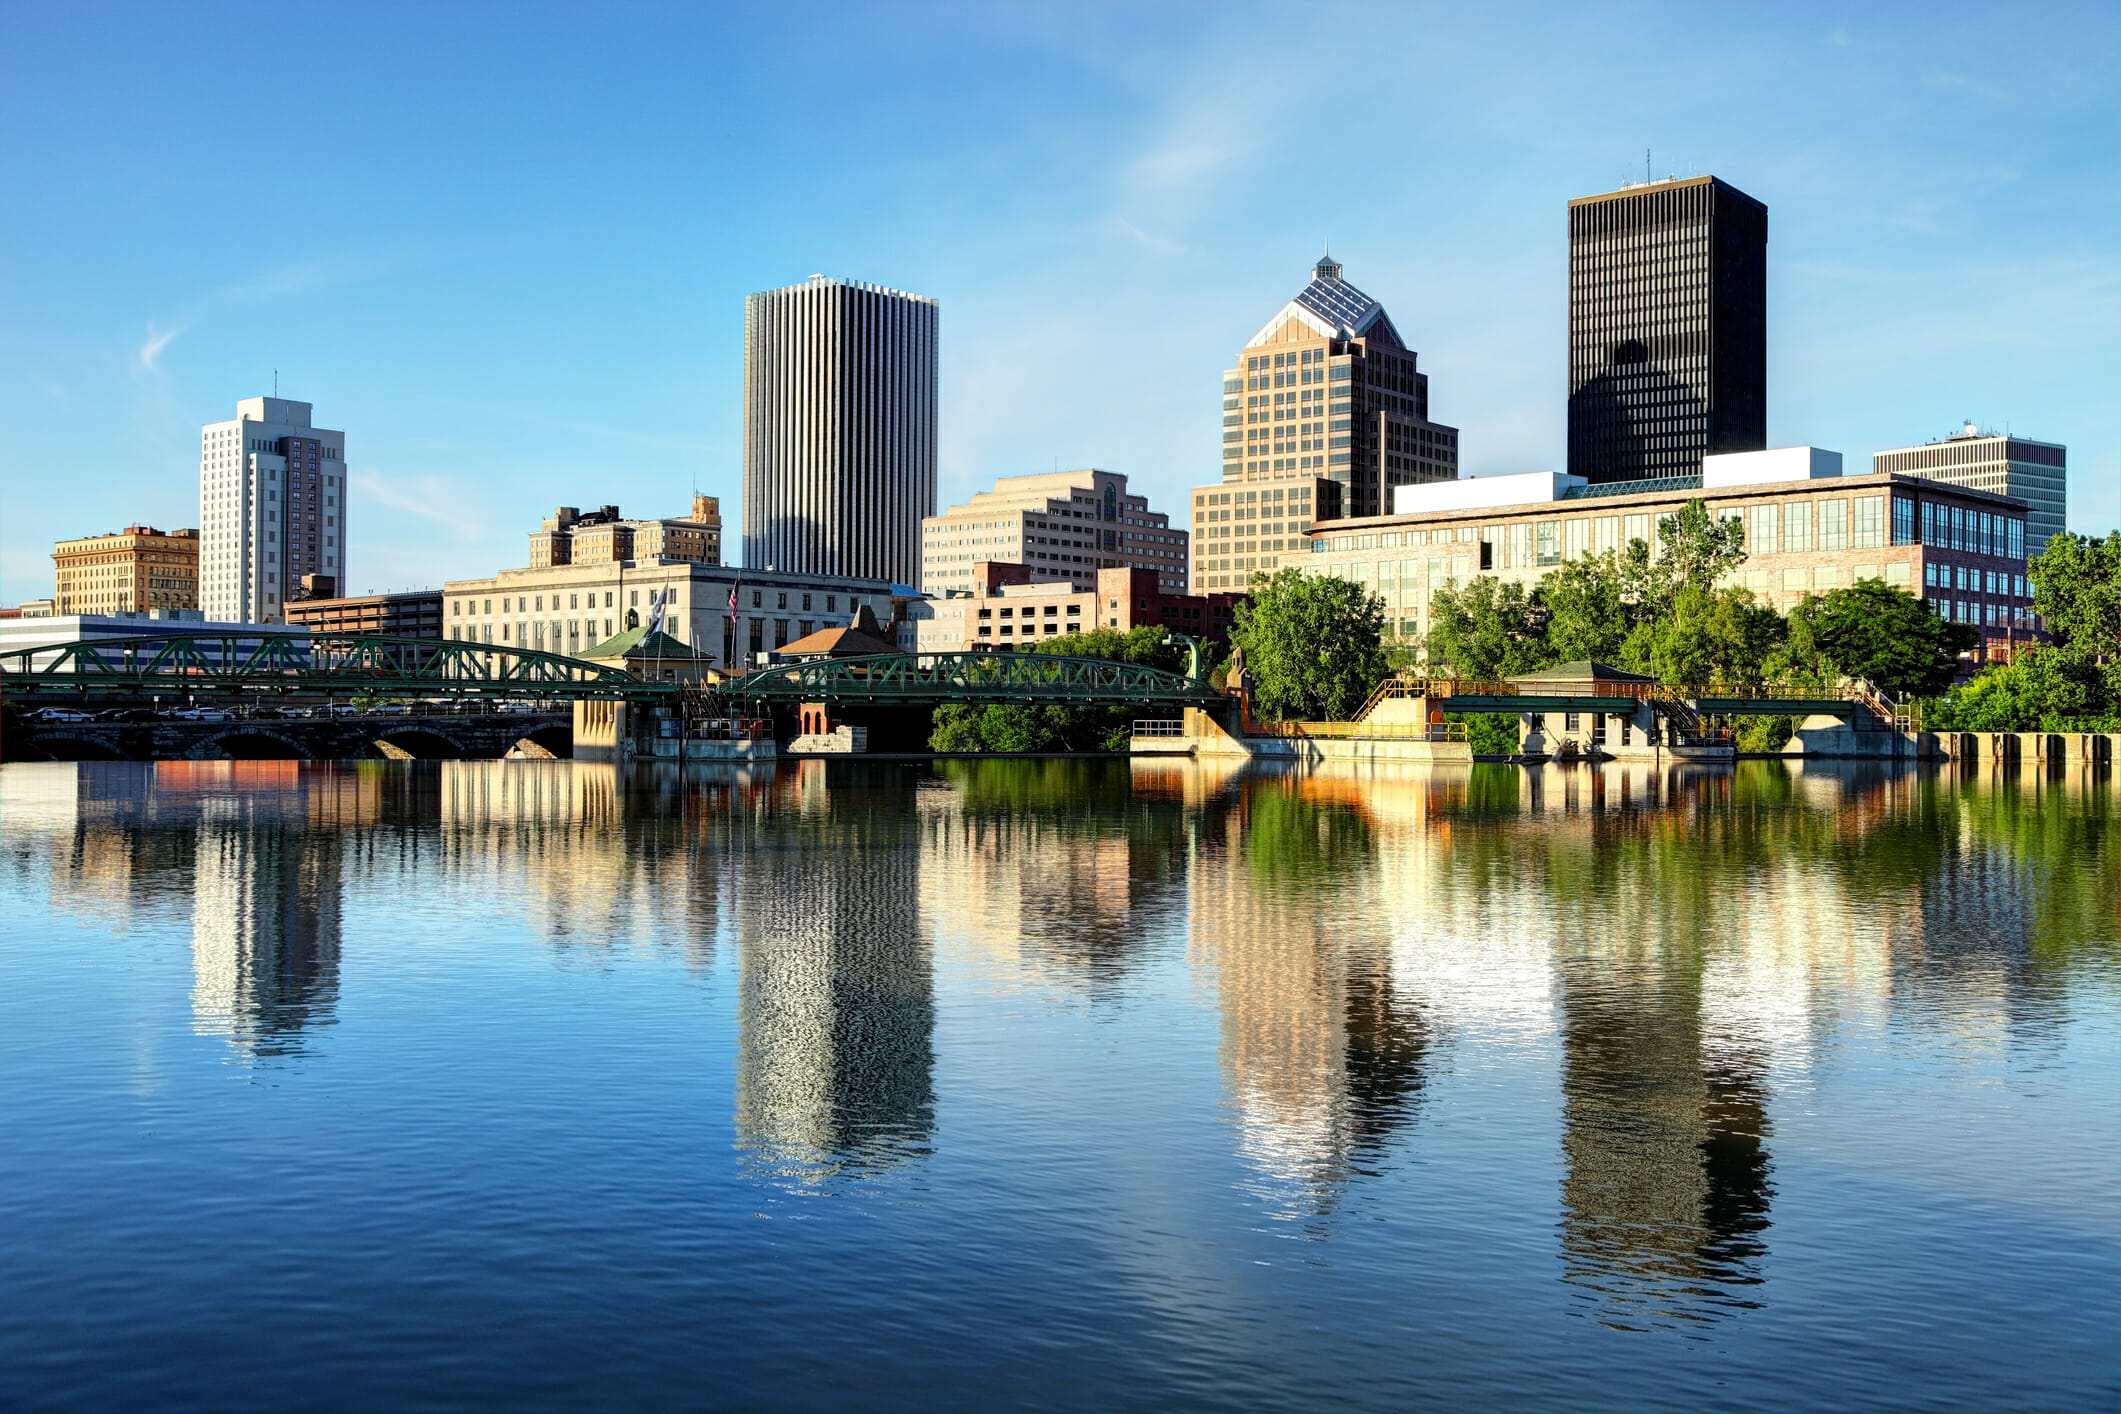 Rochester is a city and the county seat of Monroe County in the state of New York. Rochester is New York's third most populous city after New York City and Buffalo